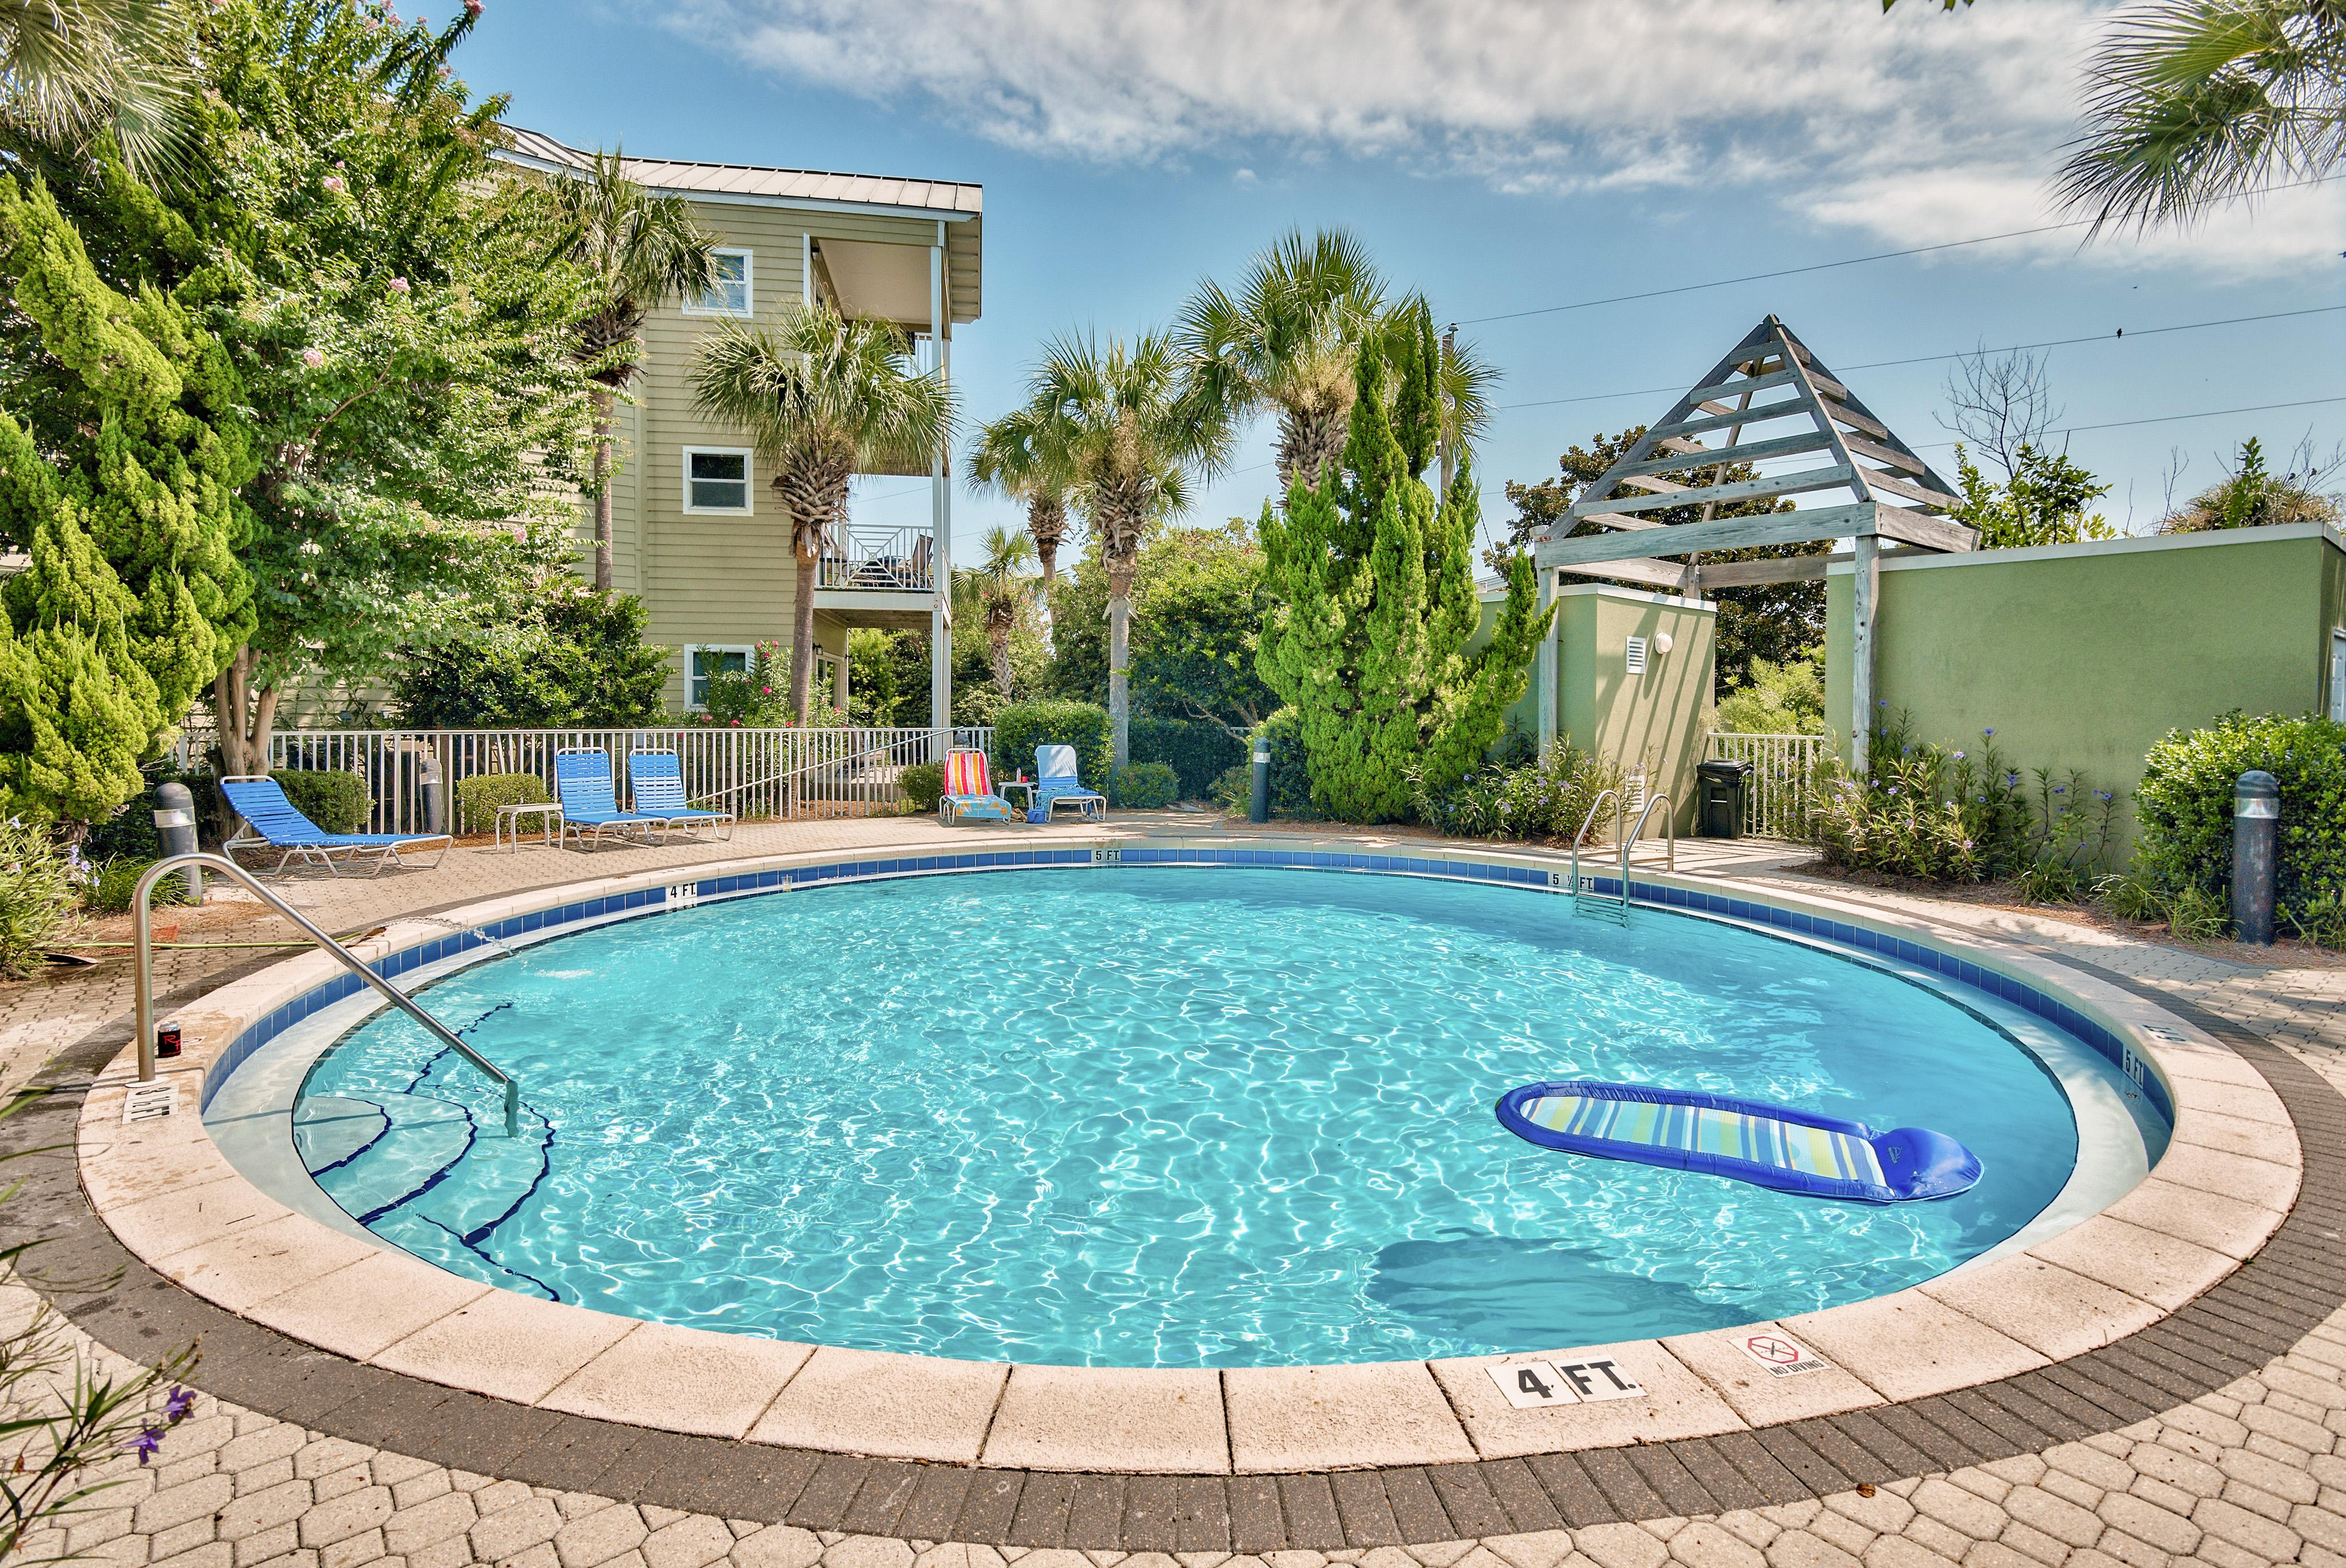 Grab a pool float and relax by the sparkling pool-- steps from your condo.